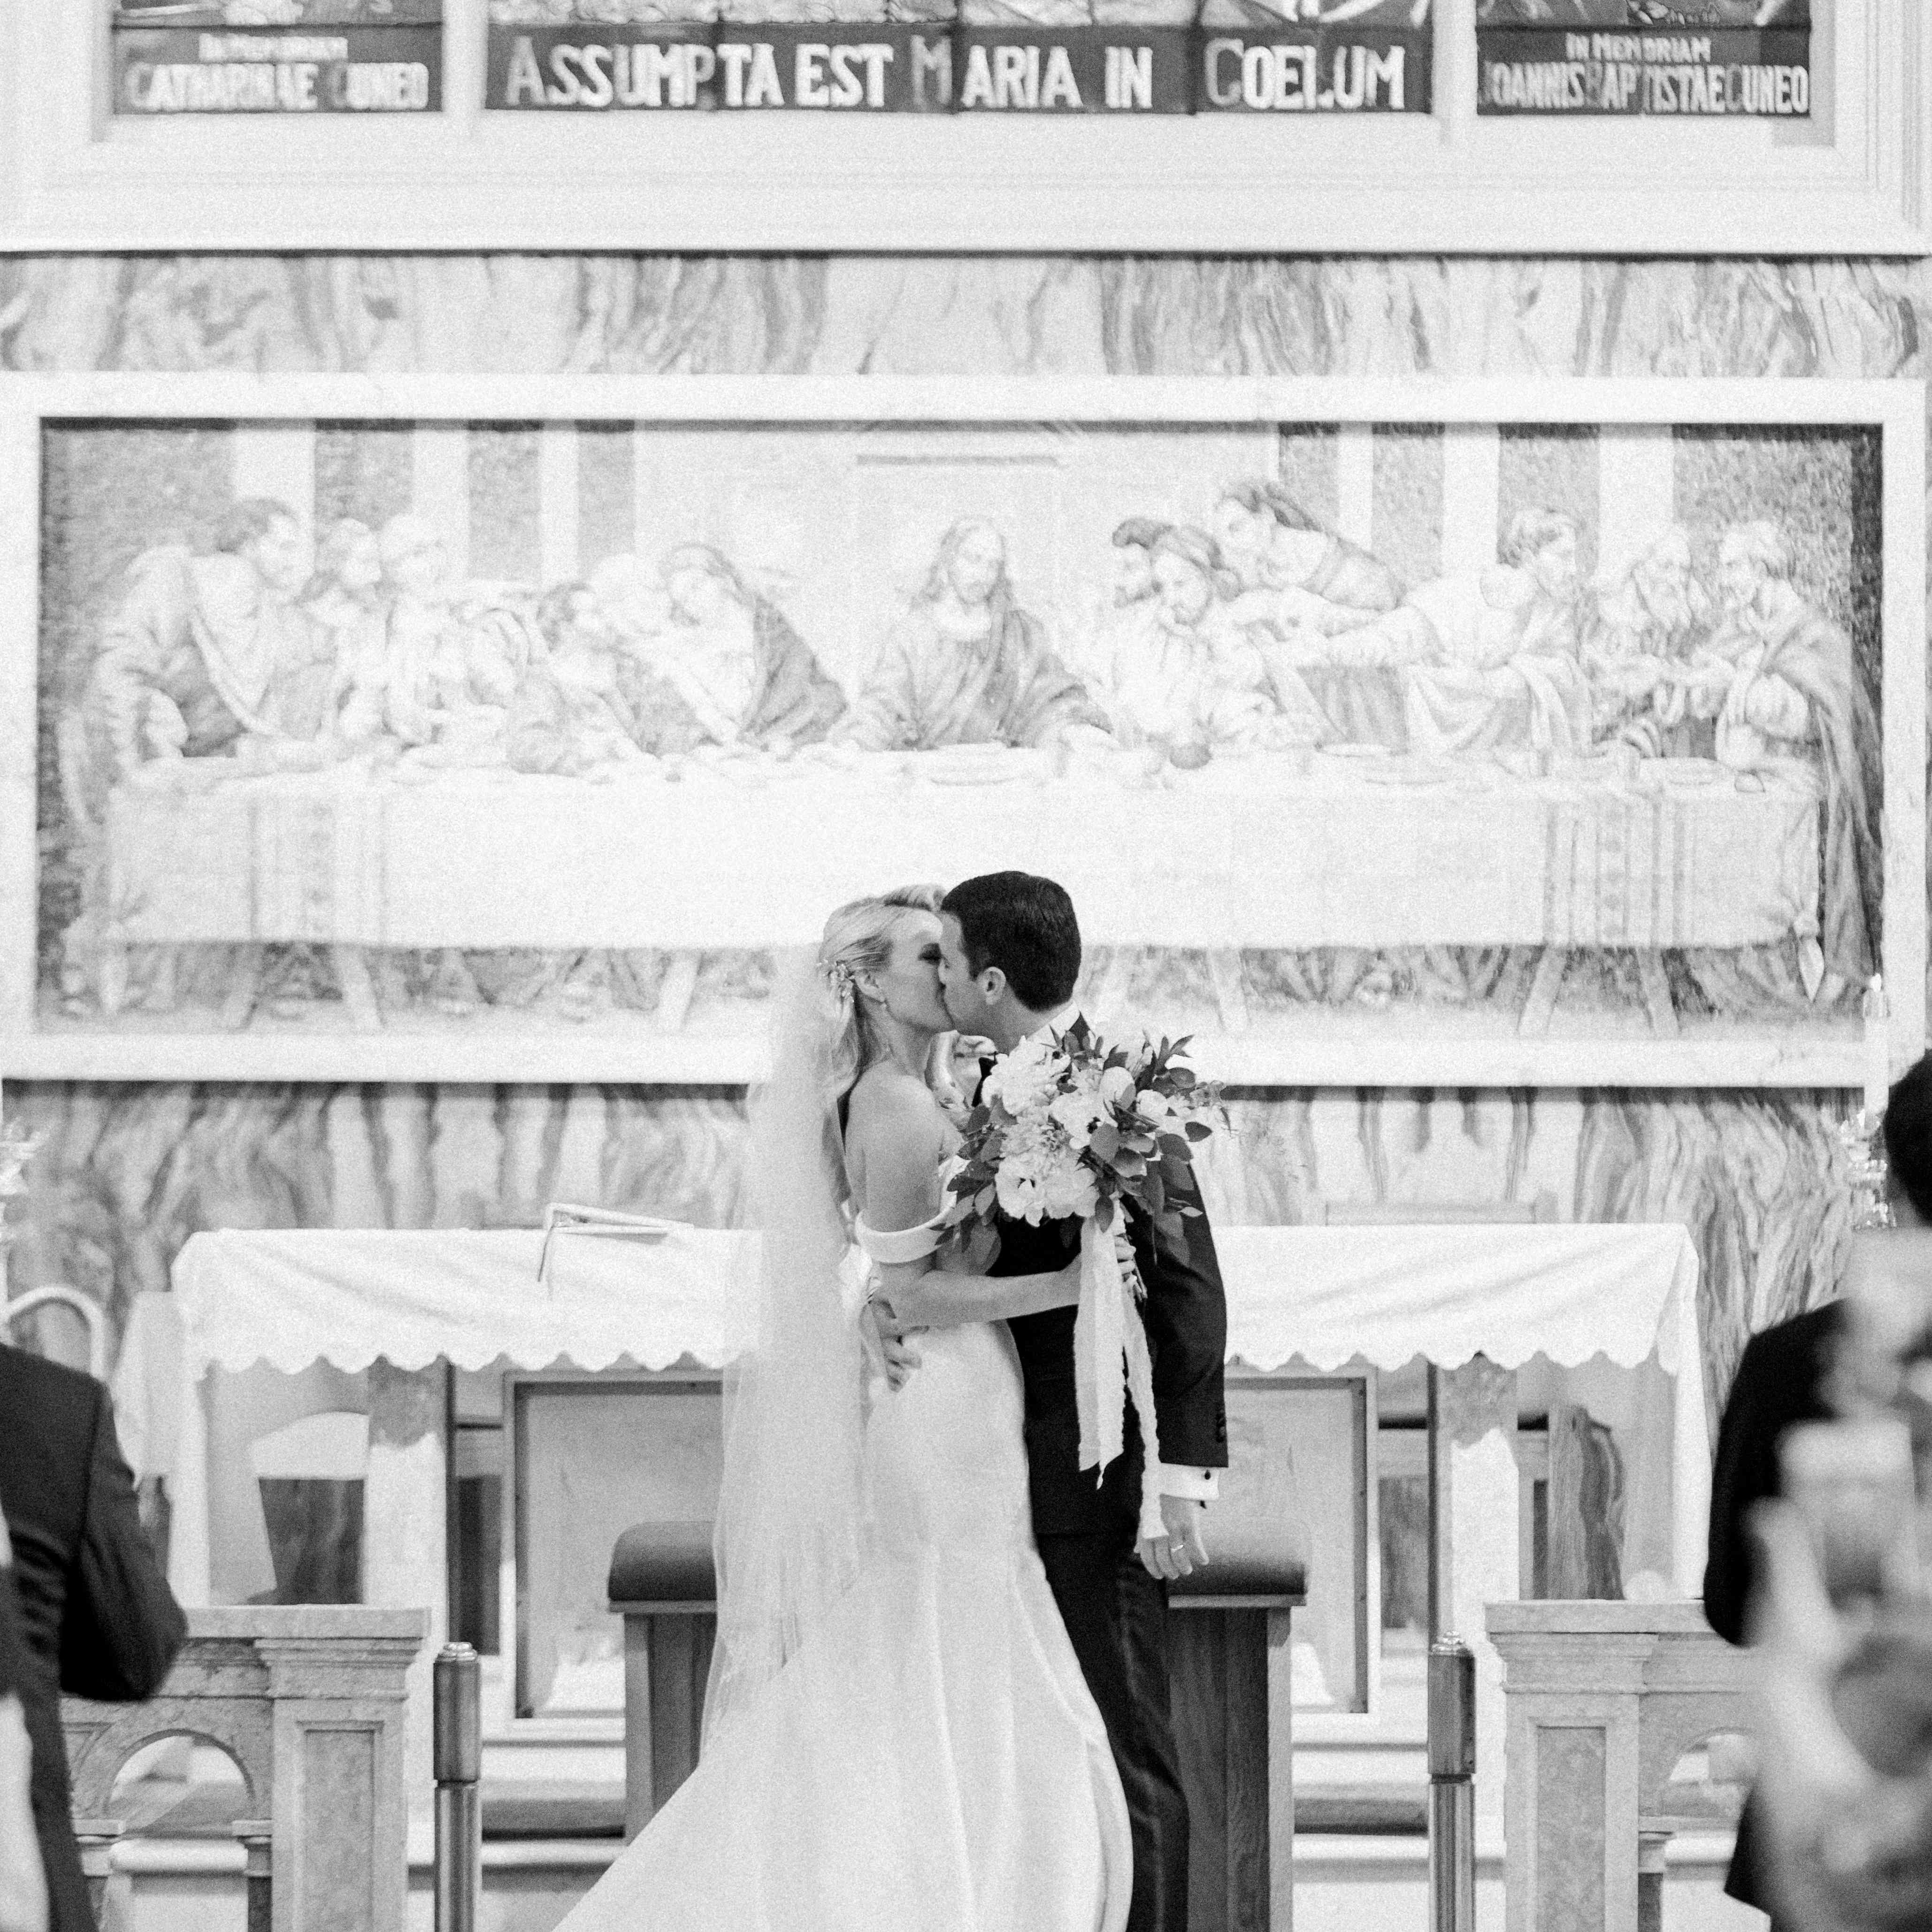 <p>Bride and groom kissing in church</p><br><br>